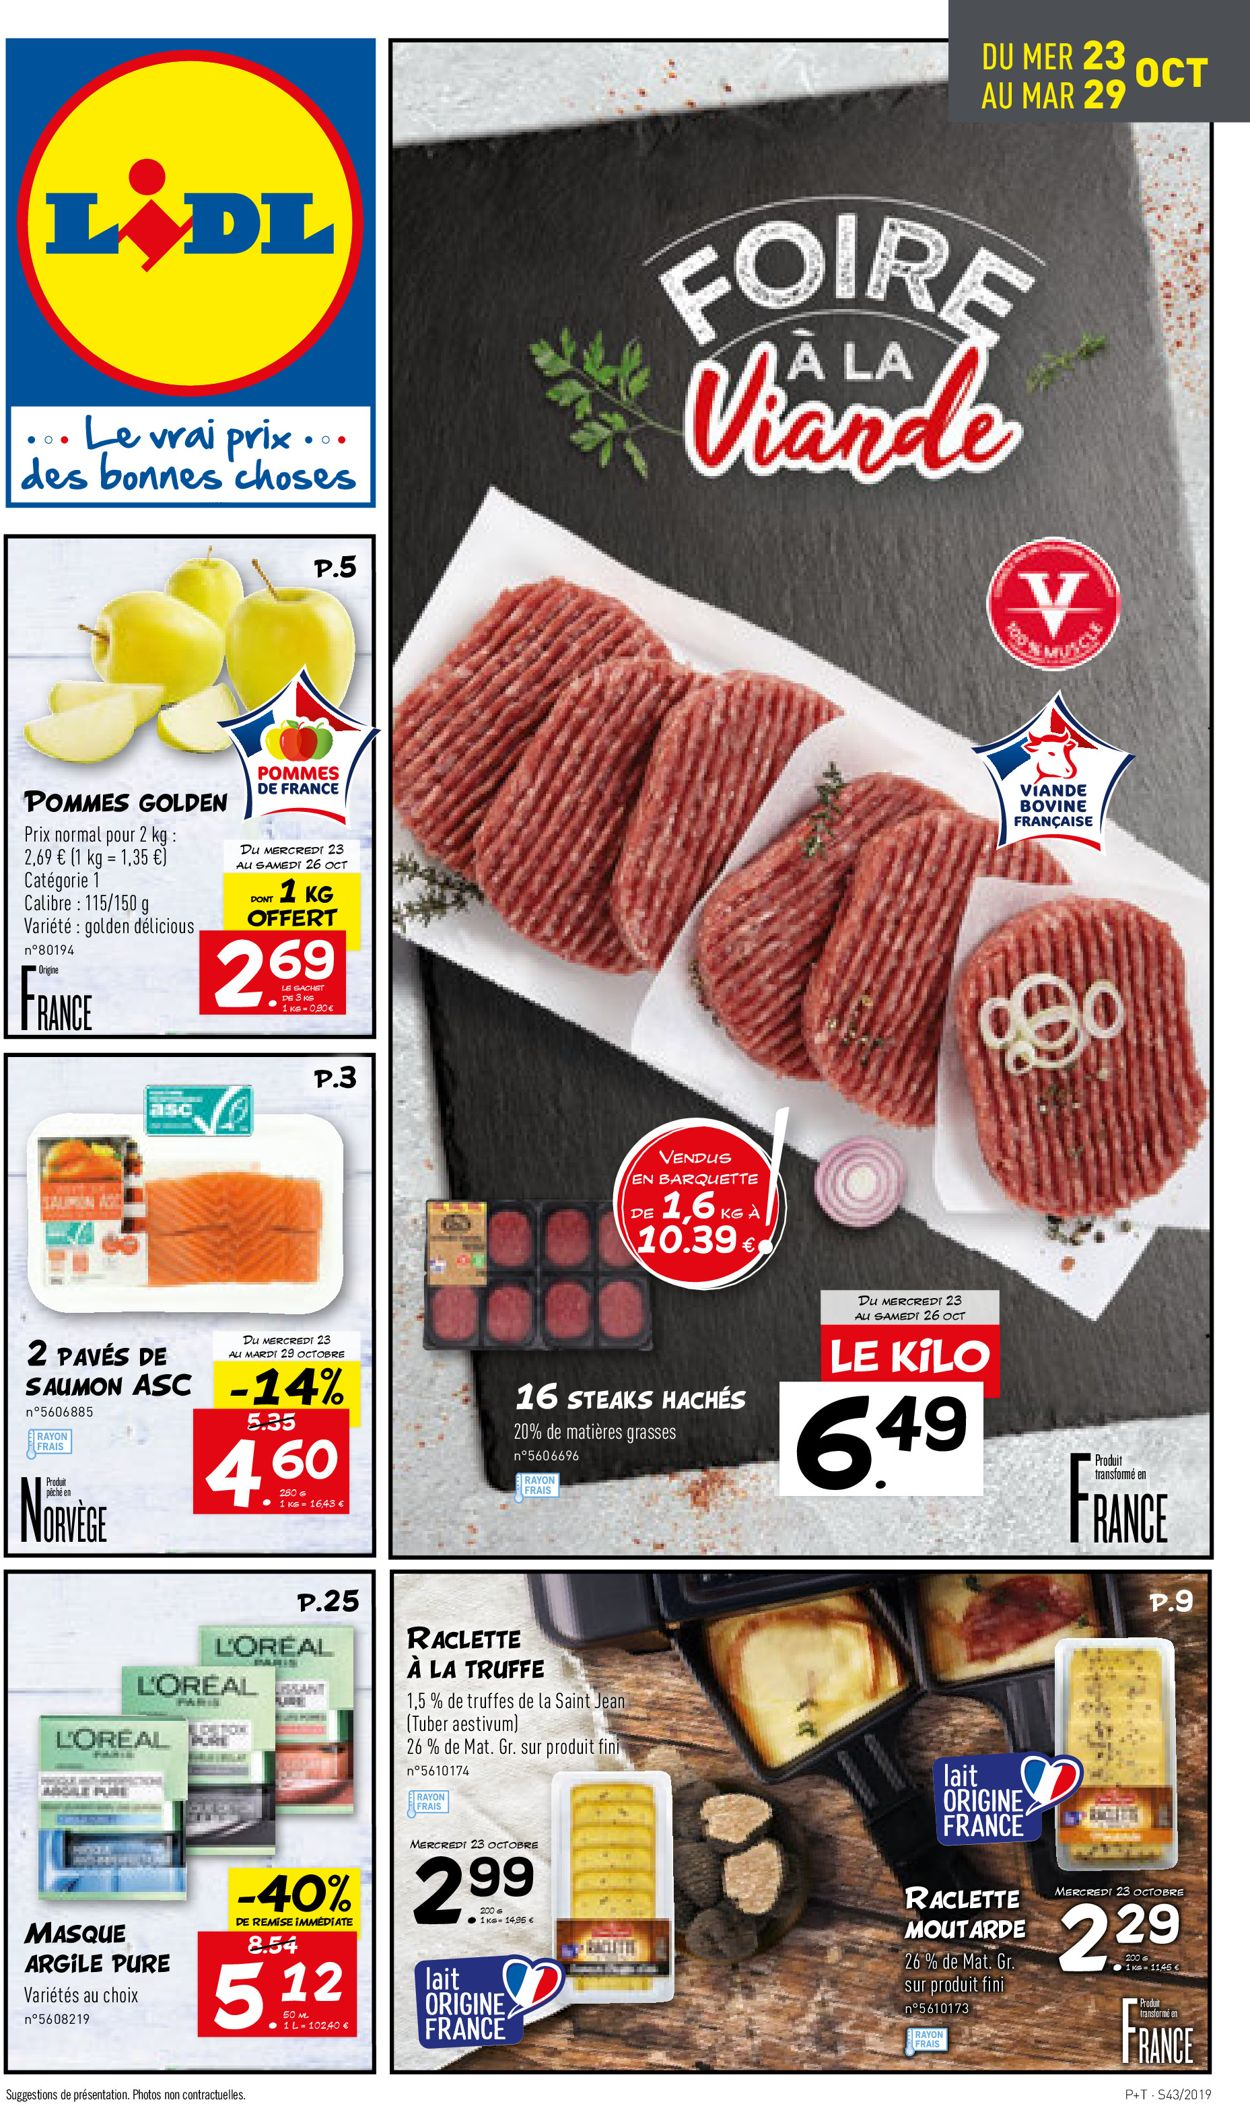 Lidl Catalogue - 23.10-29.10.2019